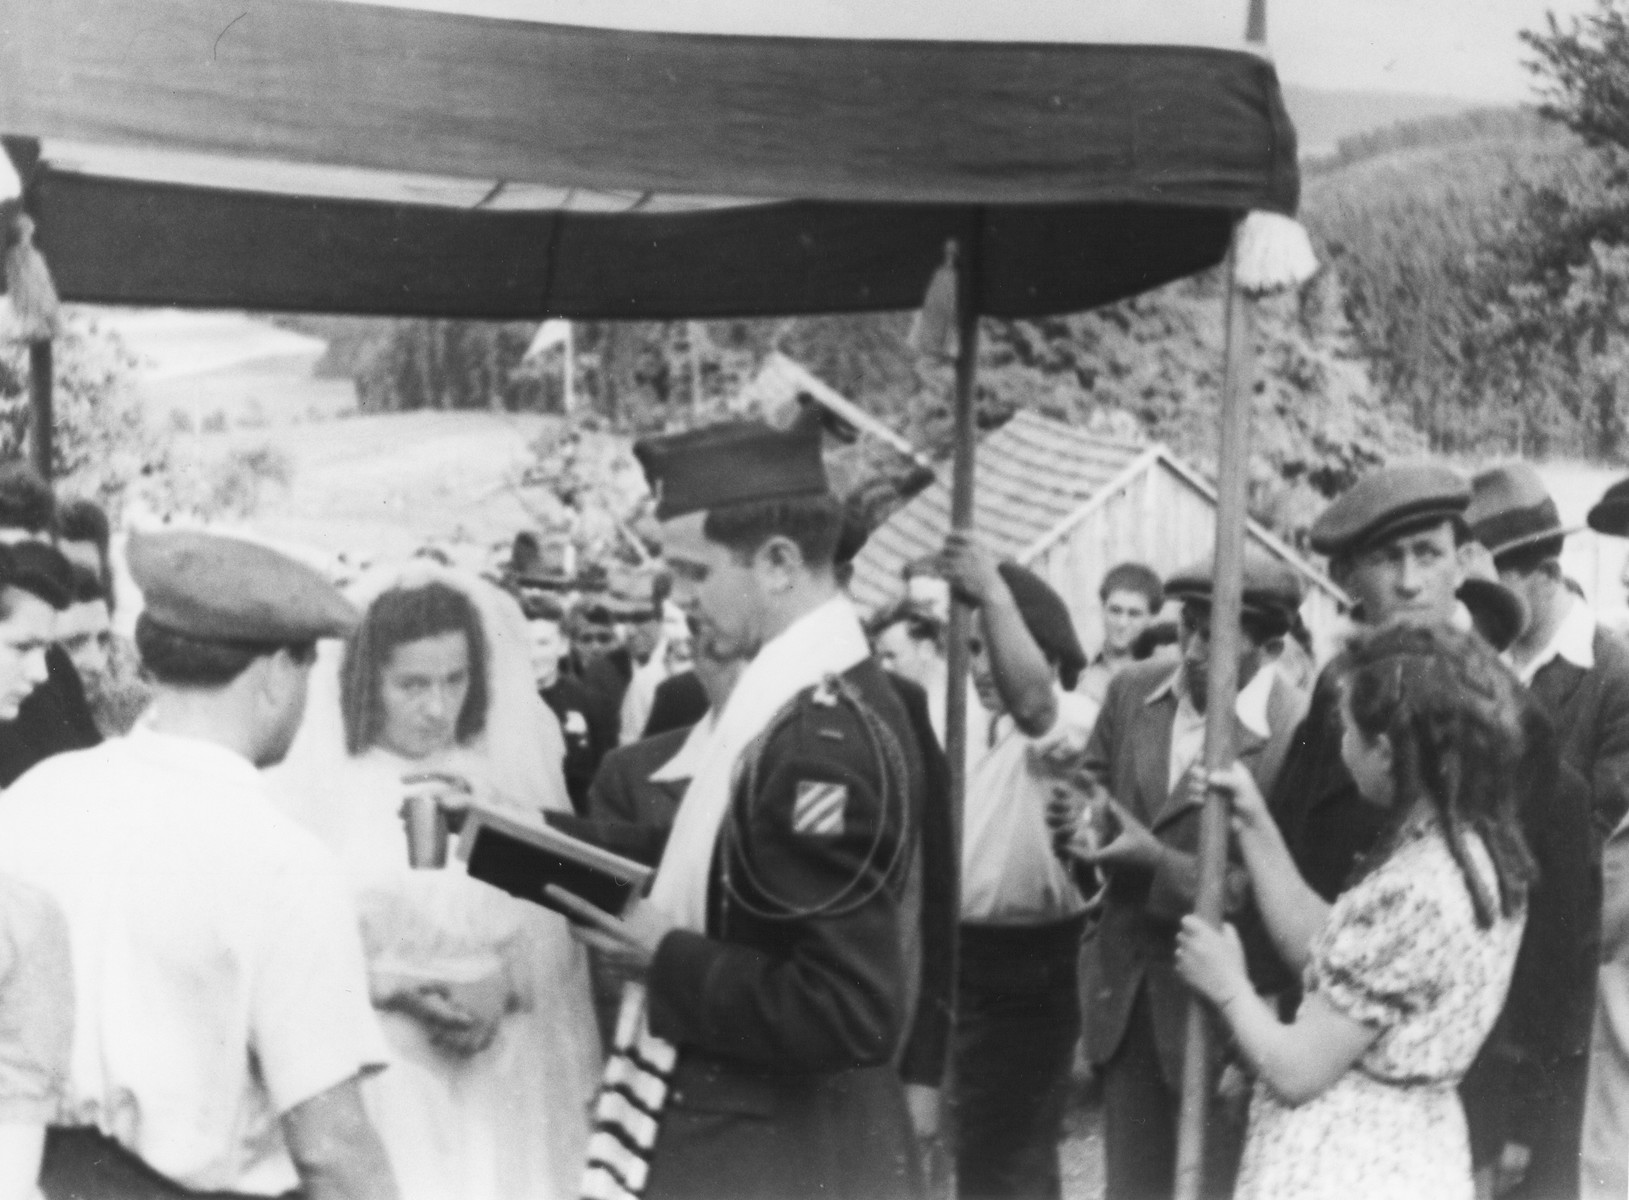 U.S. Army chaplain Mayer Abramowitz officiates at a wedding ceremony for displaced persons at Kibbutz Buchenwald in Geringshof.